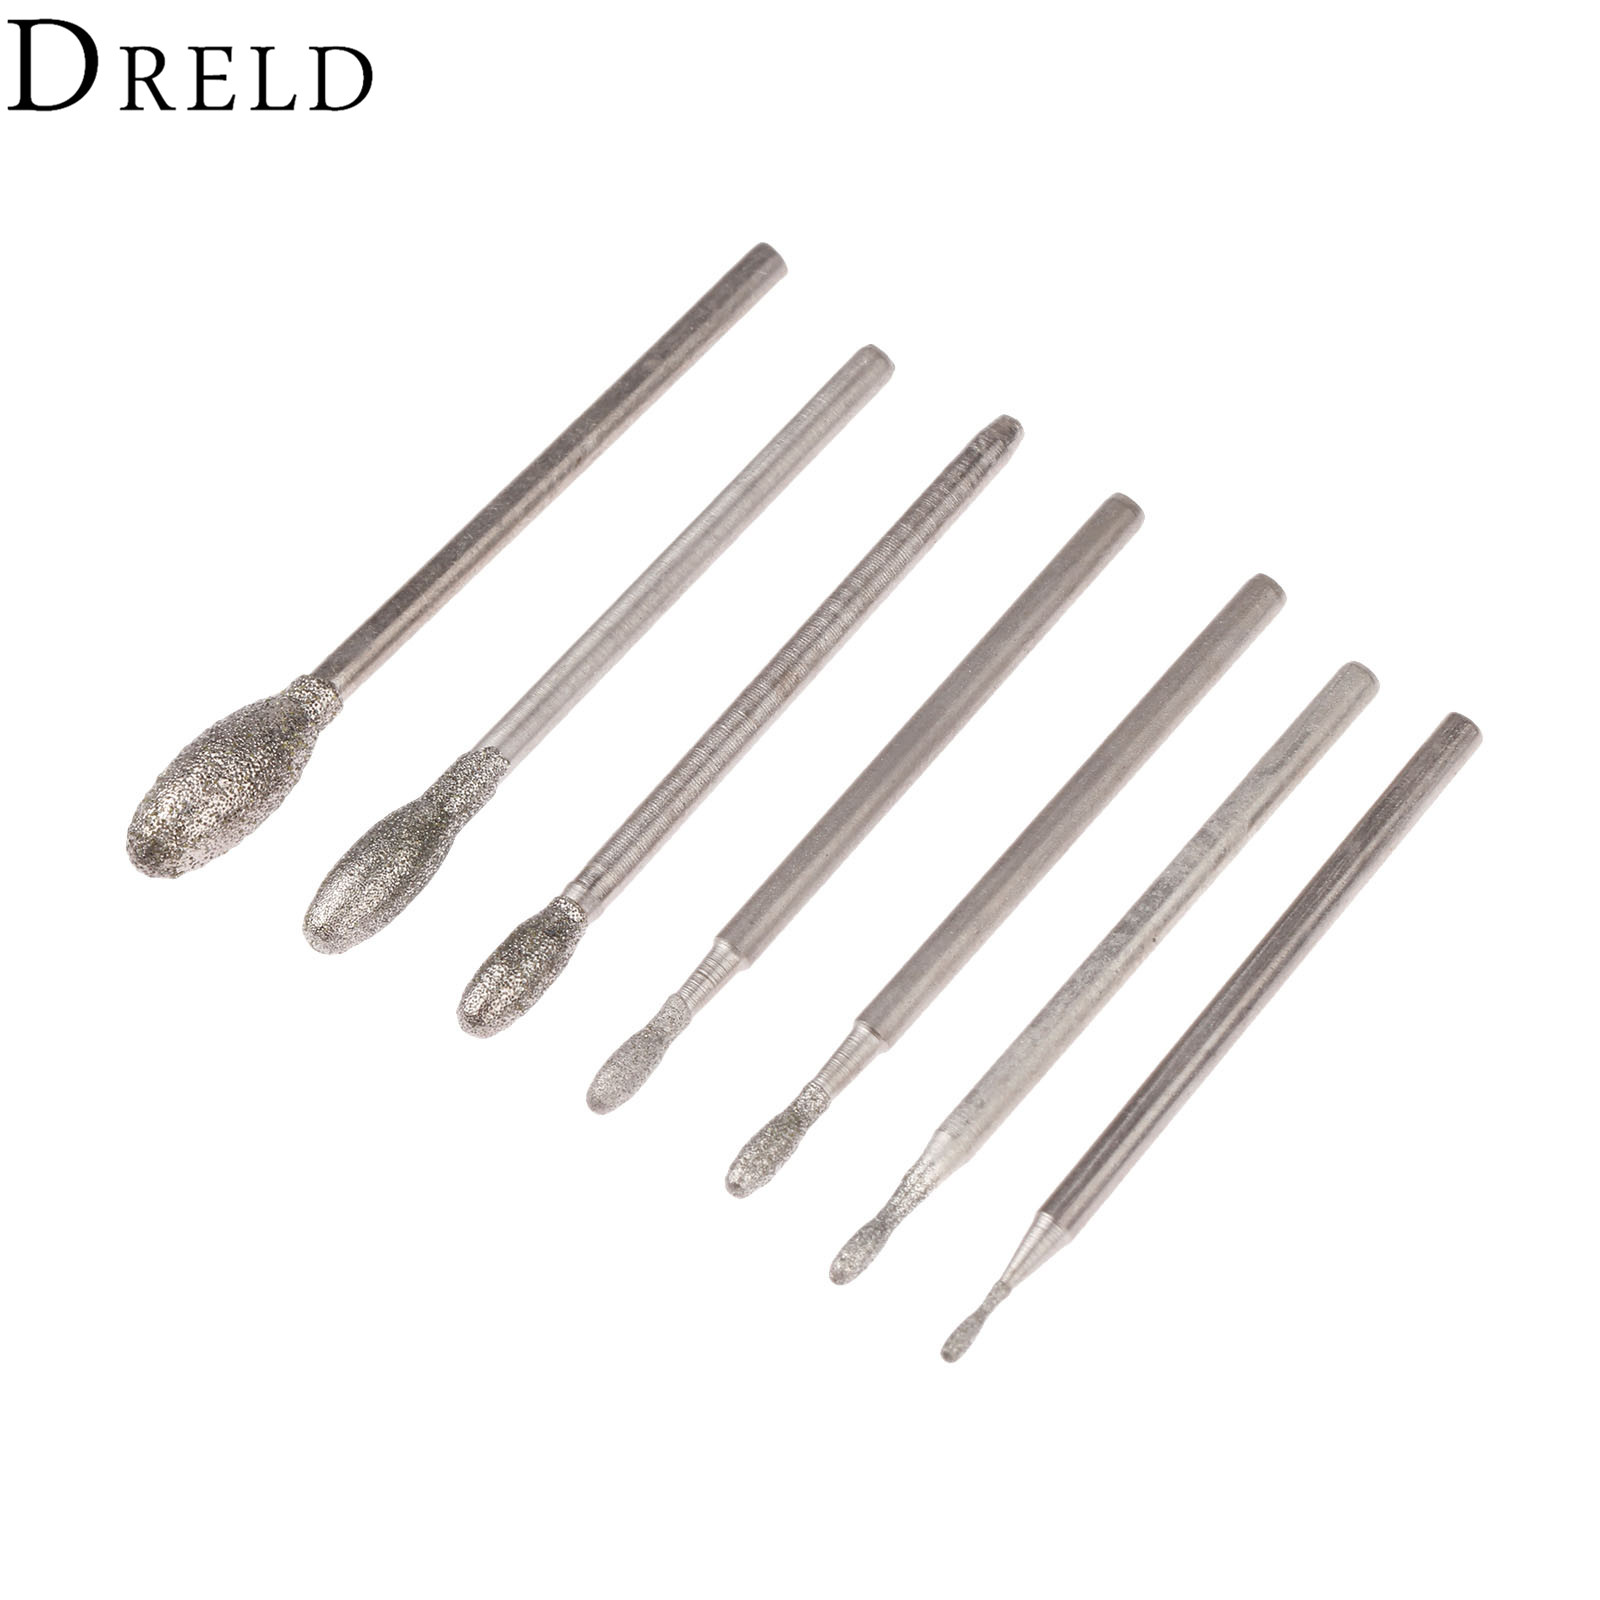 DRELD 7Pcs Dremel Accesories Oval Diamond Grinding Head Burrs Bits 2.35mm Shank Jade Stone Carving Polishing Engraving Tool